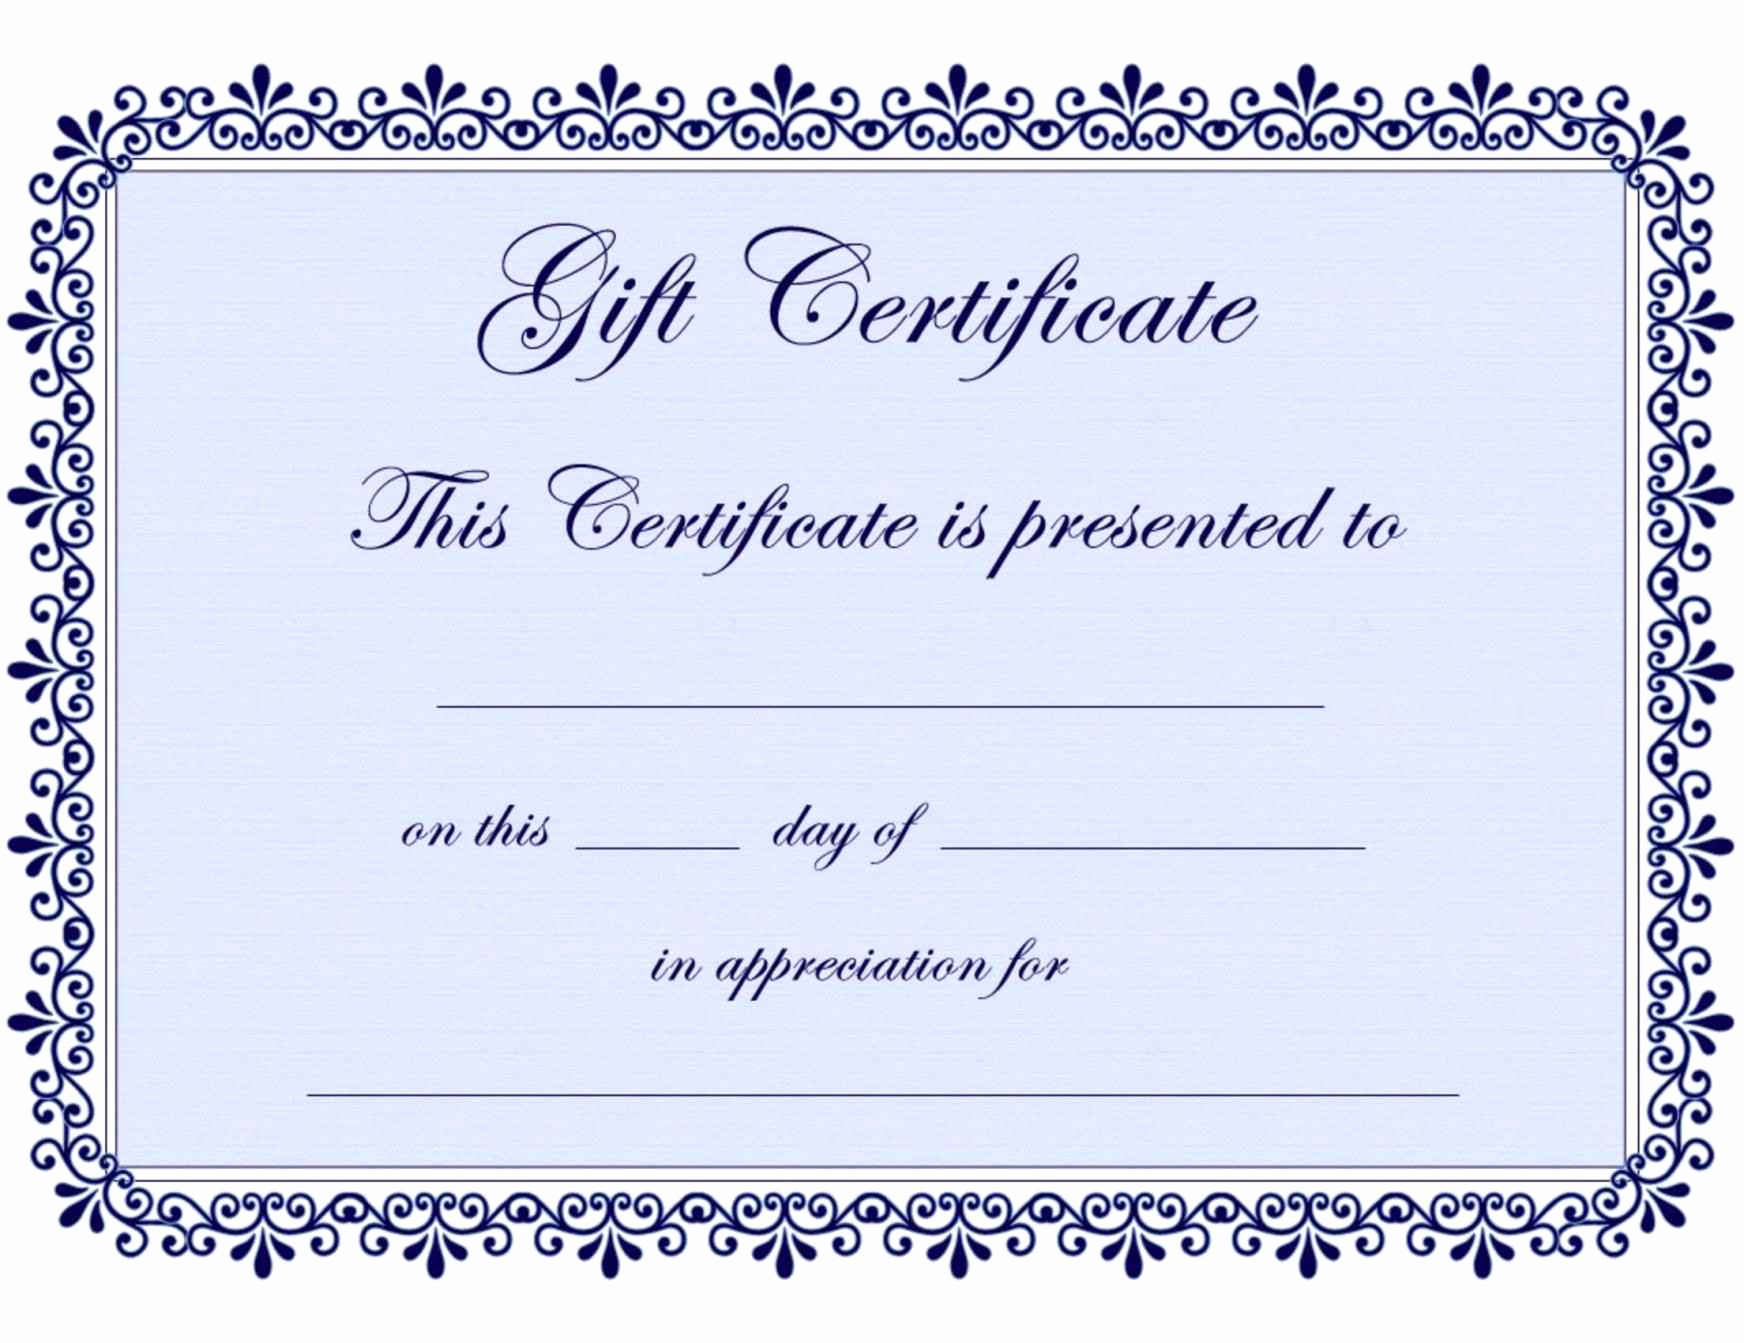 Gift Certificate Template Word Free Unique Free Printable Gift Certificate Template Word Template